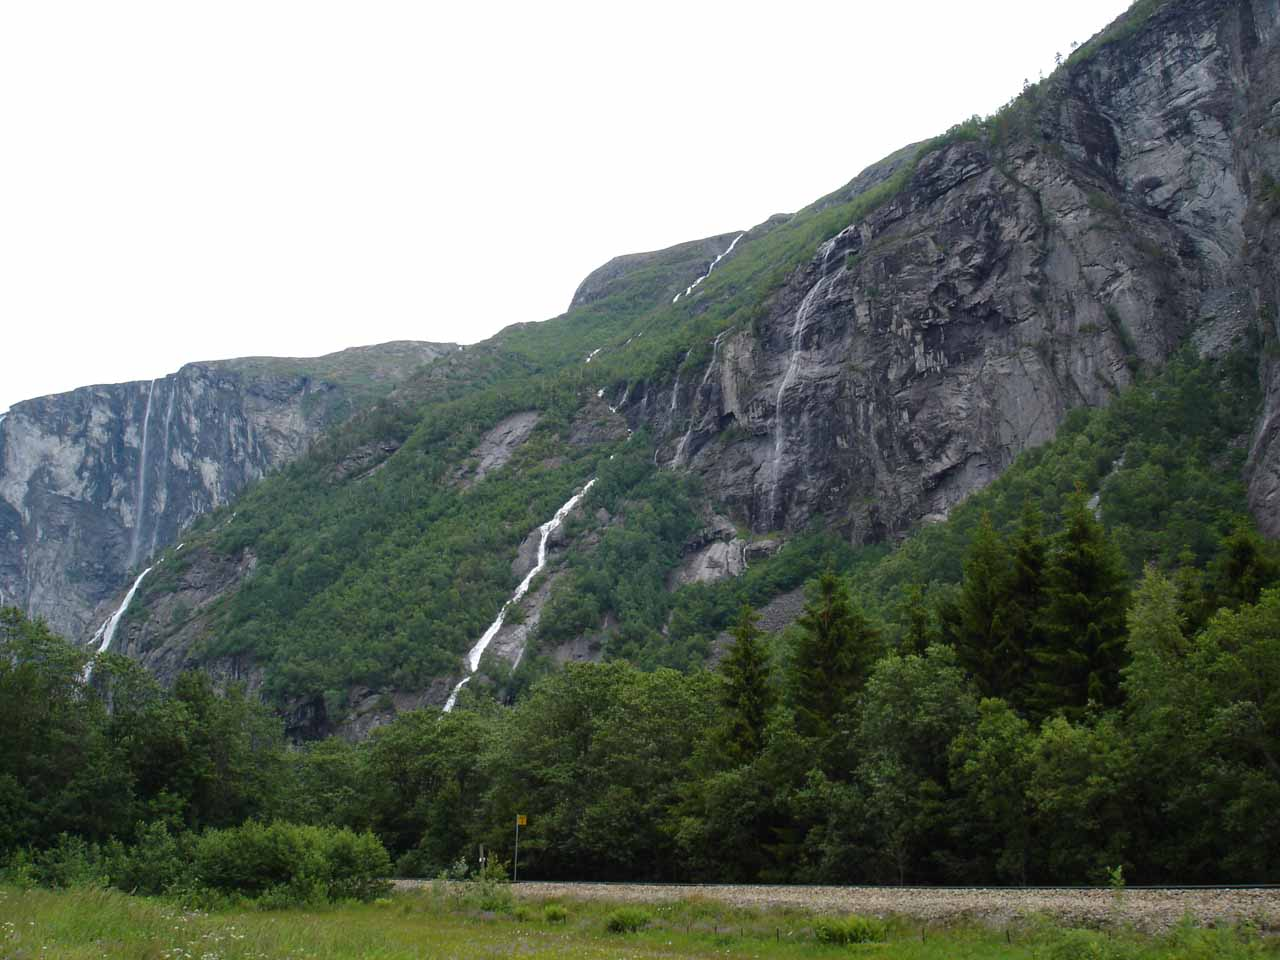 After checking out Døntefossen, we looked across the E136 towards these waterfalls (one of which was Gravdefossen) so we pursued them